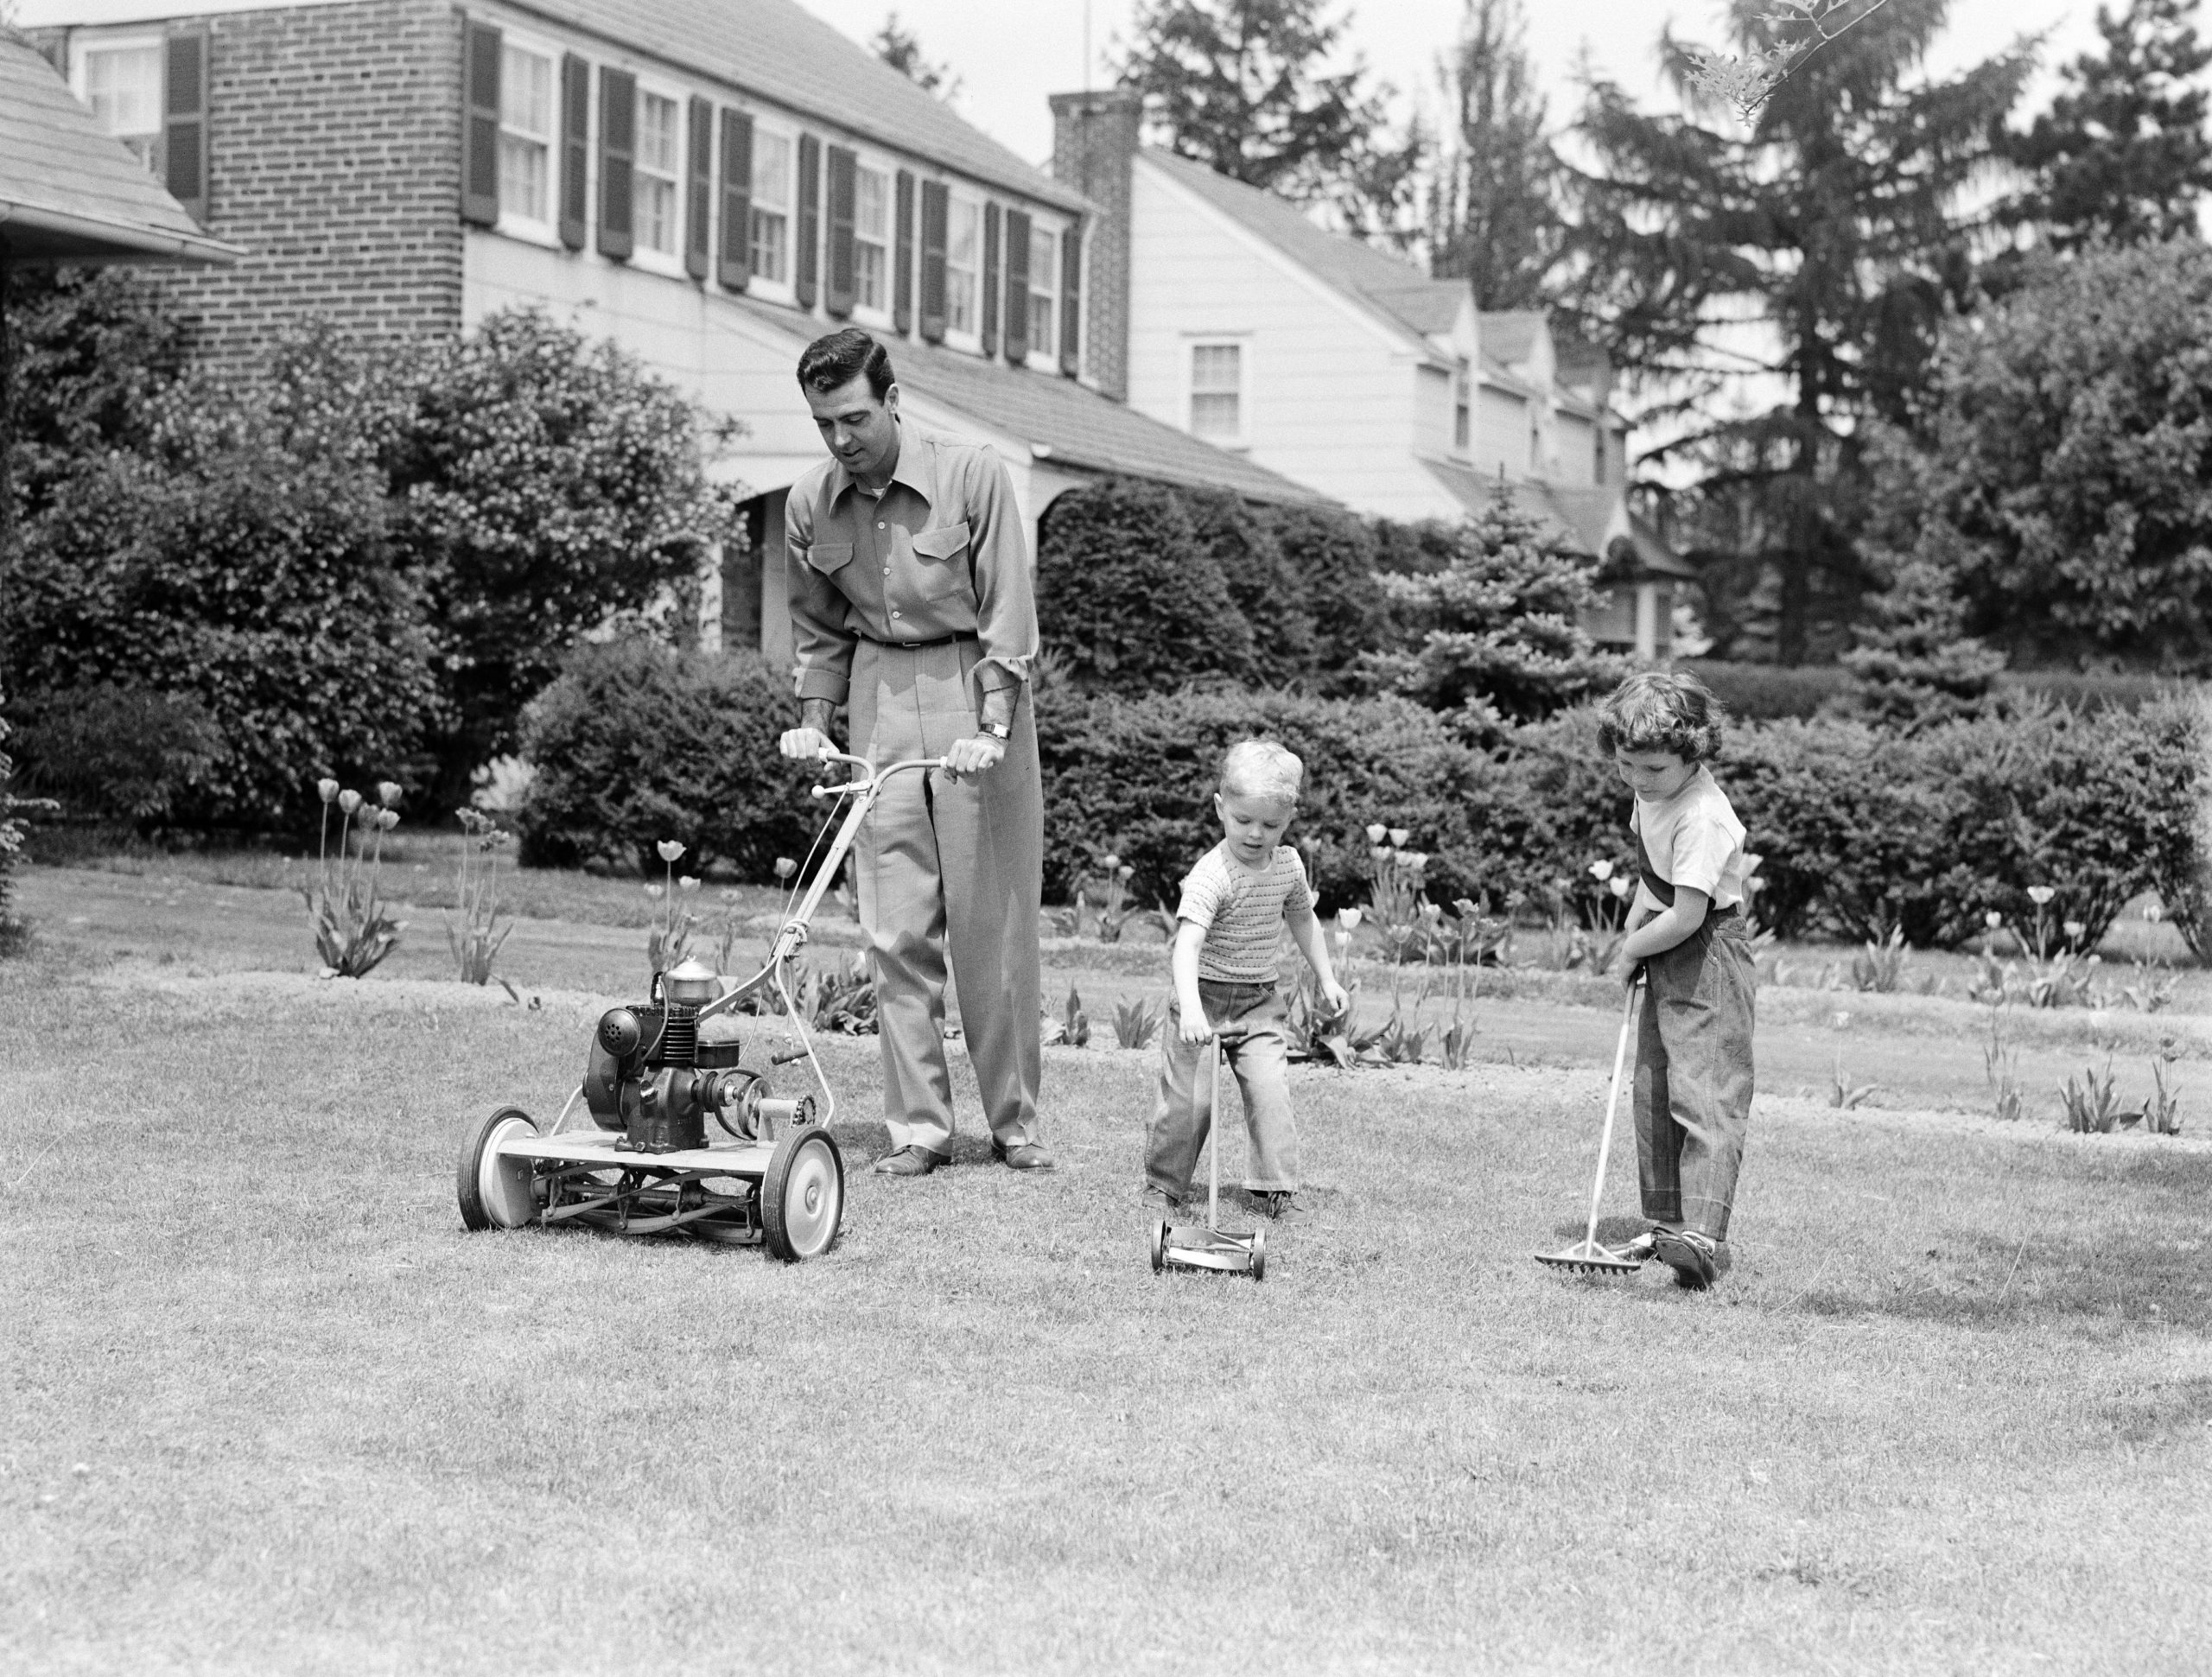 Father cutting lawn with power mower, two boys using toy rake and mower.